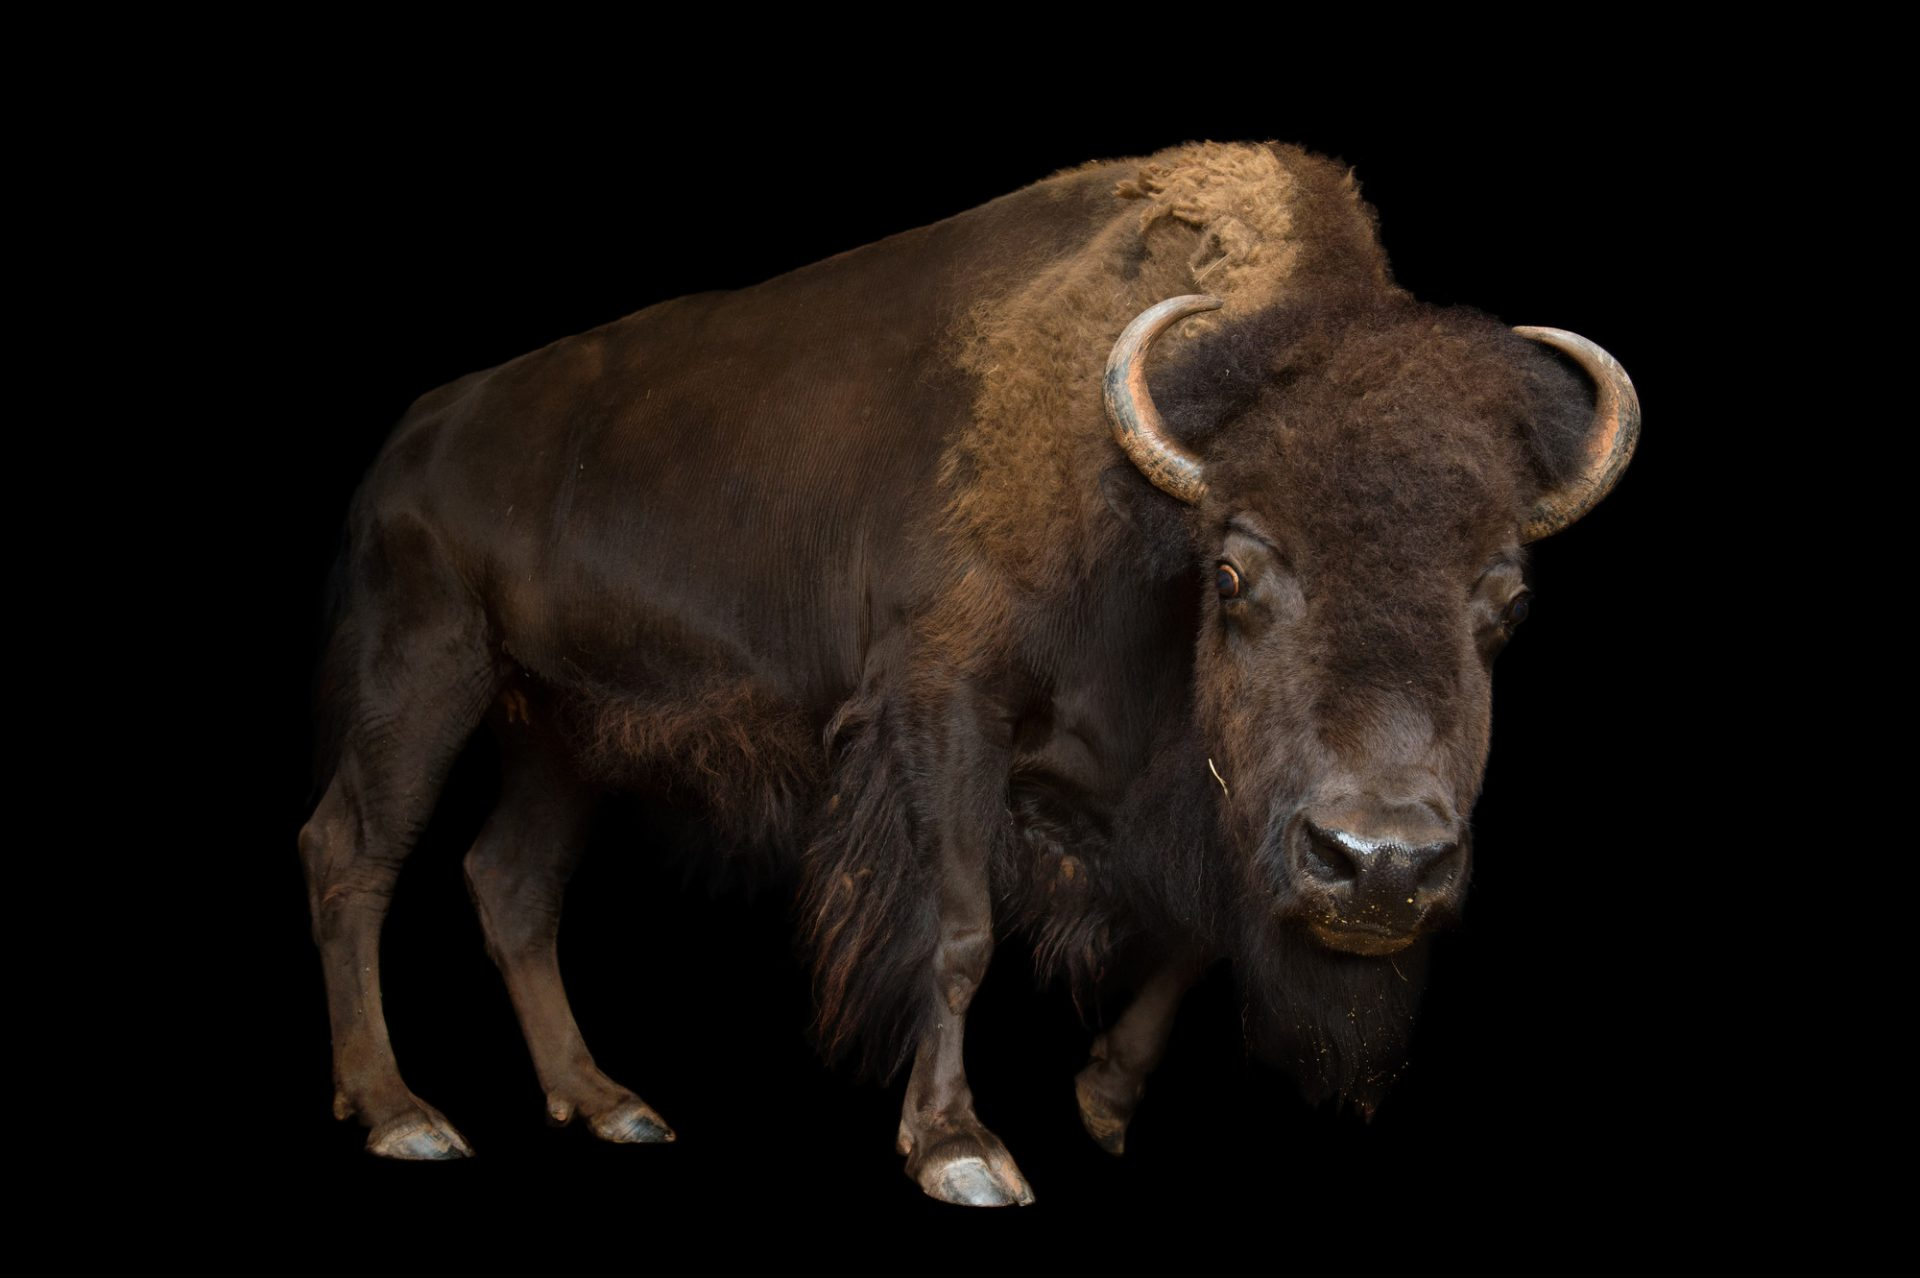 Picture of an American bison (Bison bison) at the Oklahoma City Zoo.